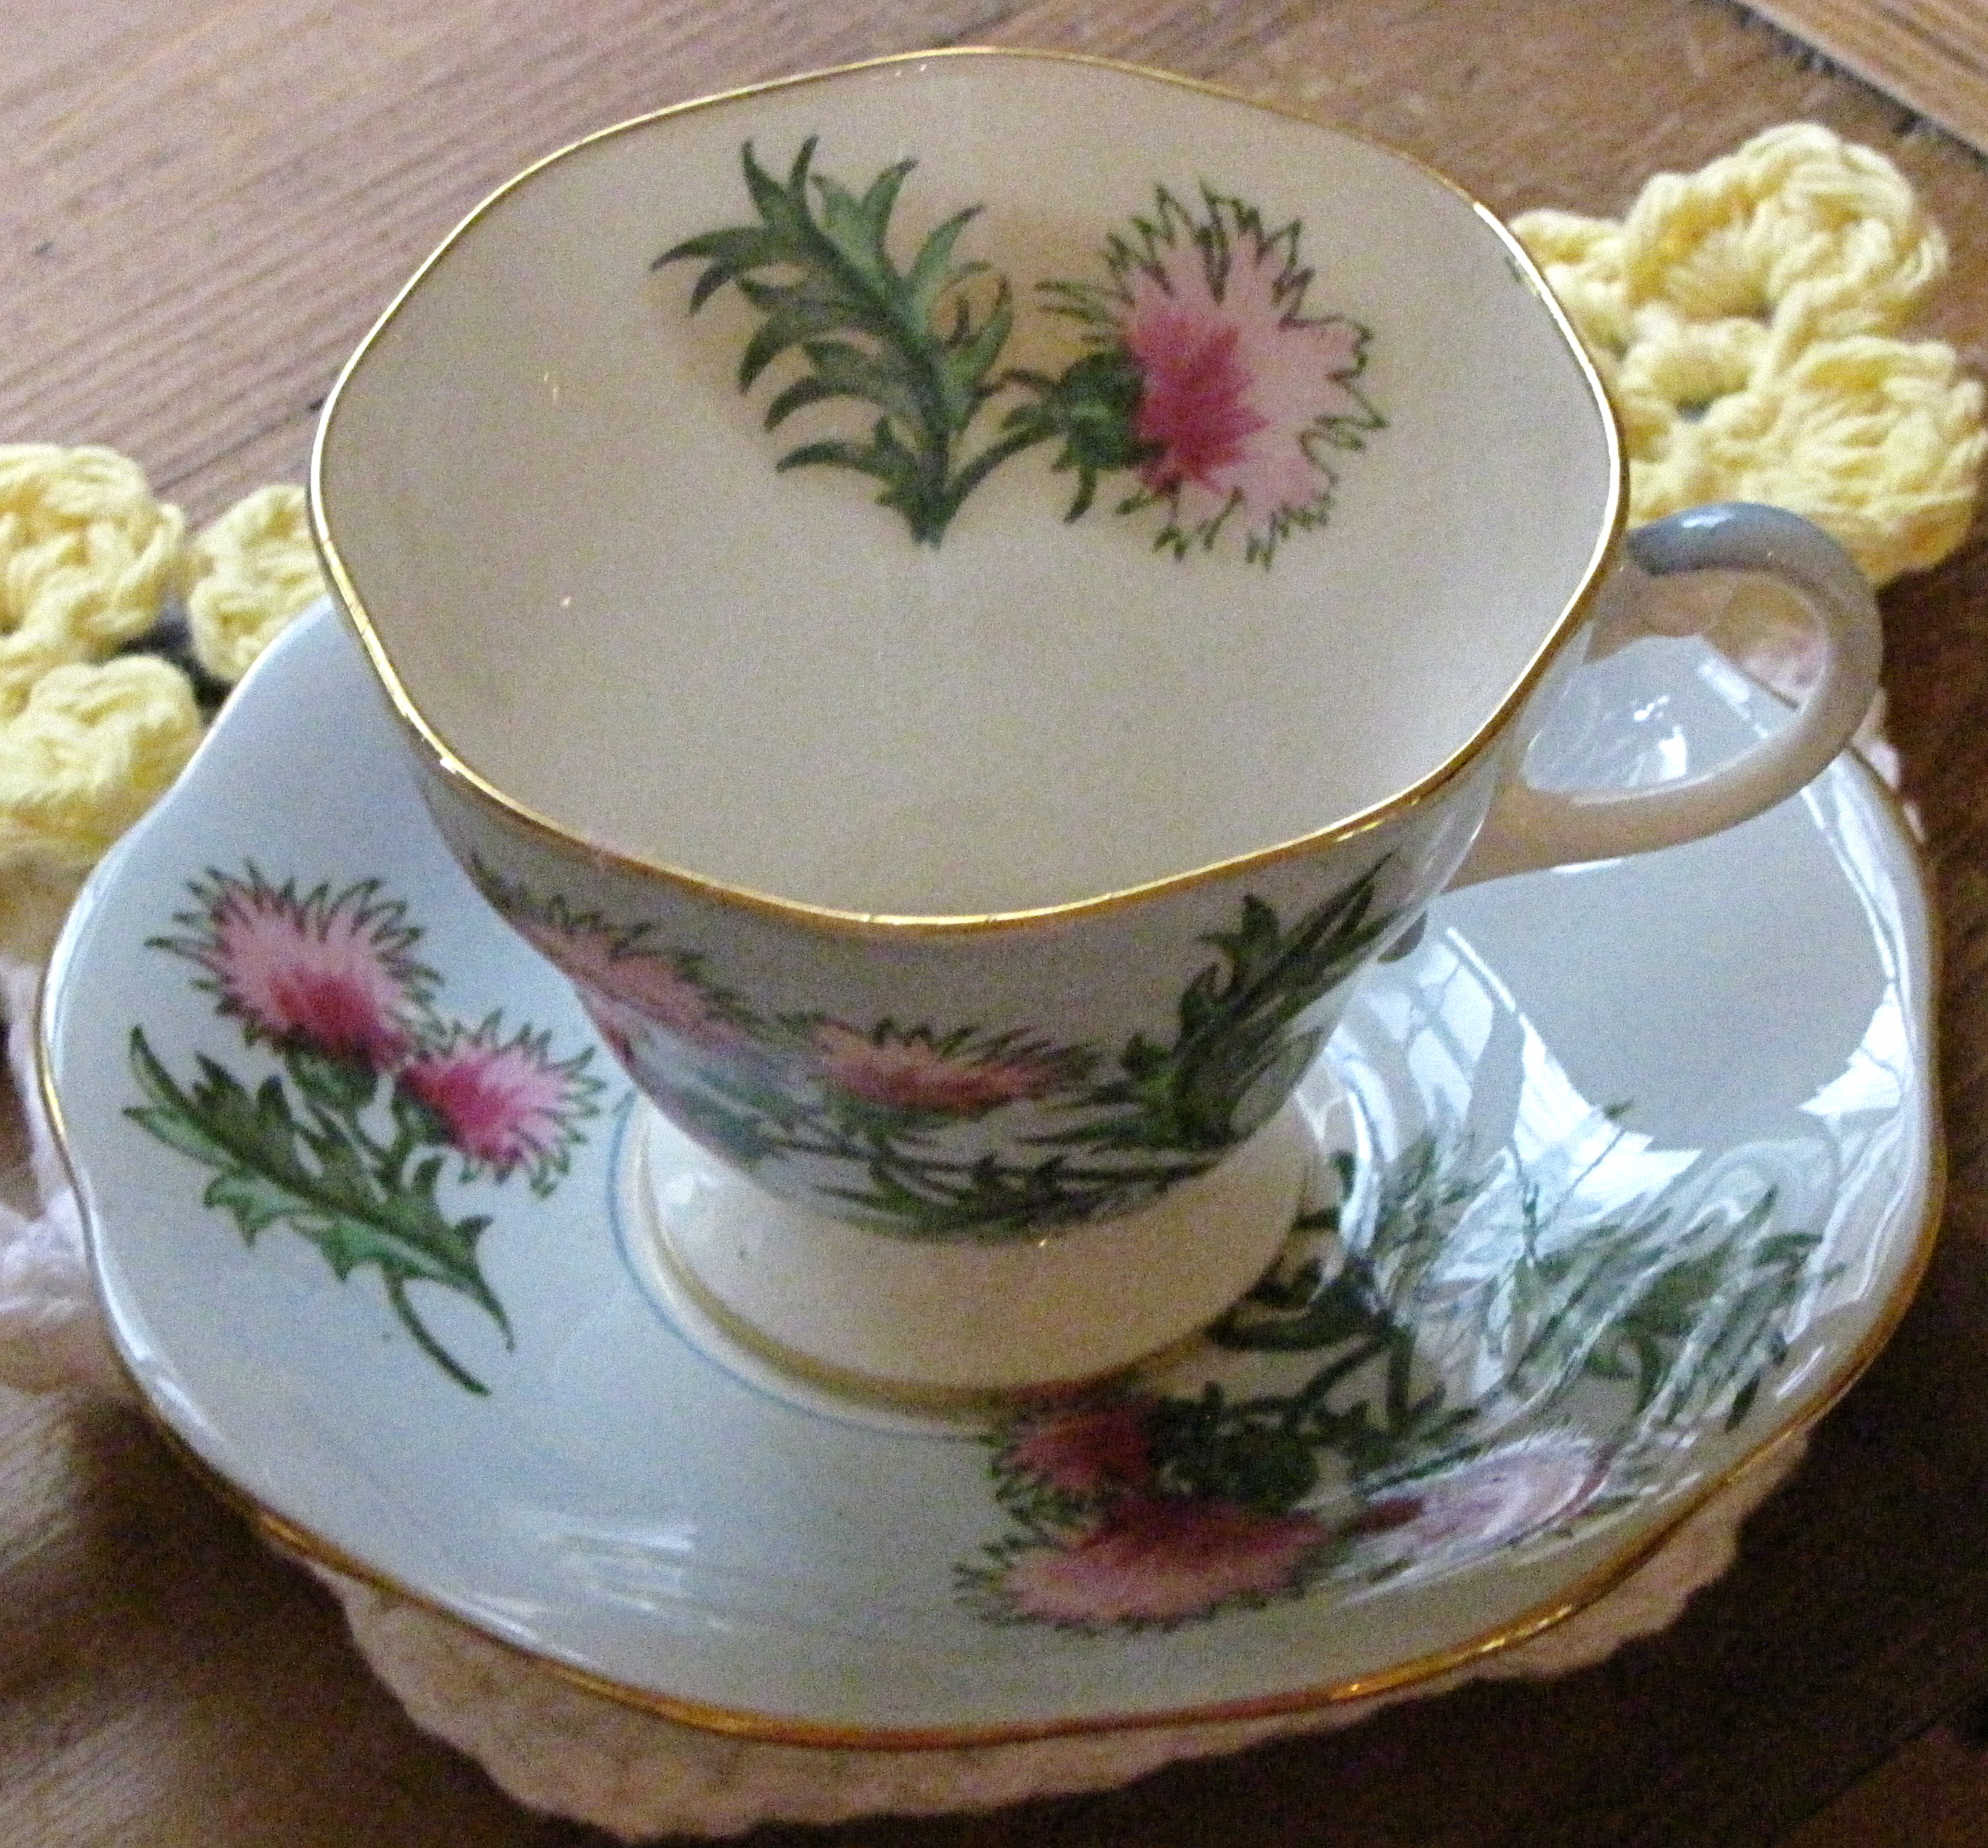 Glencarry Thistle Teacup